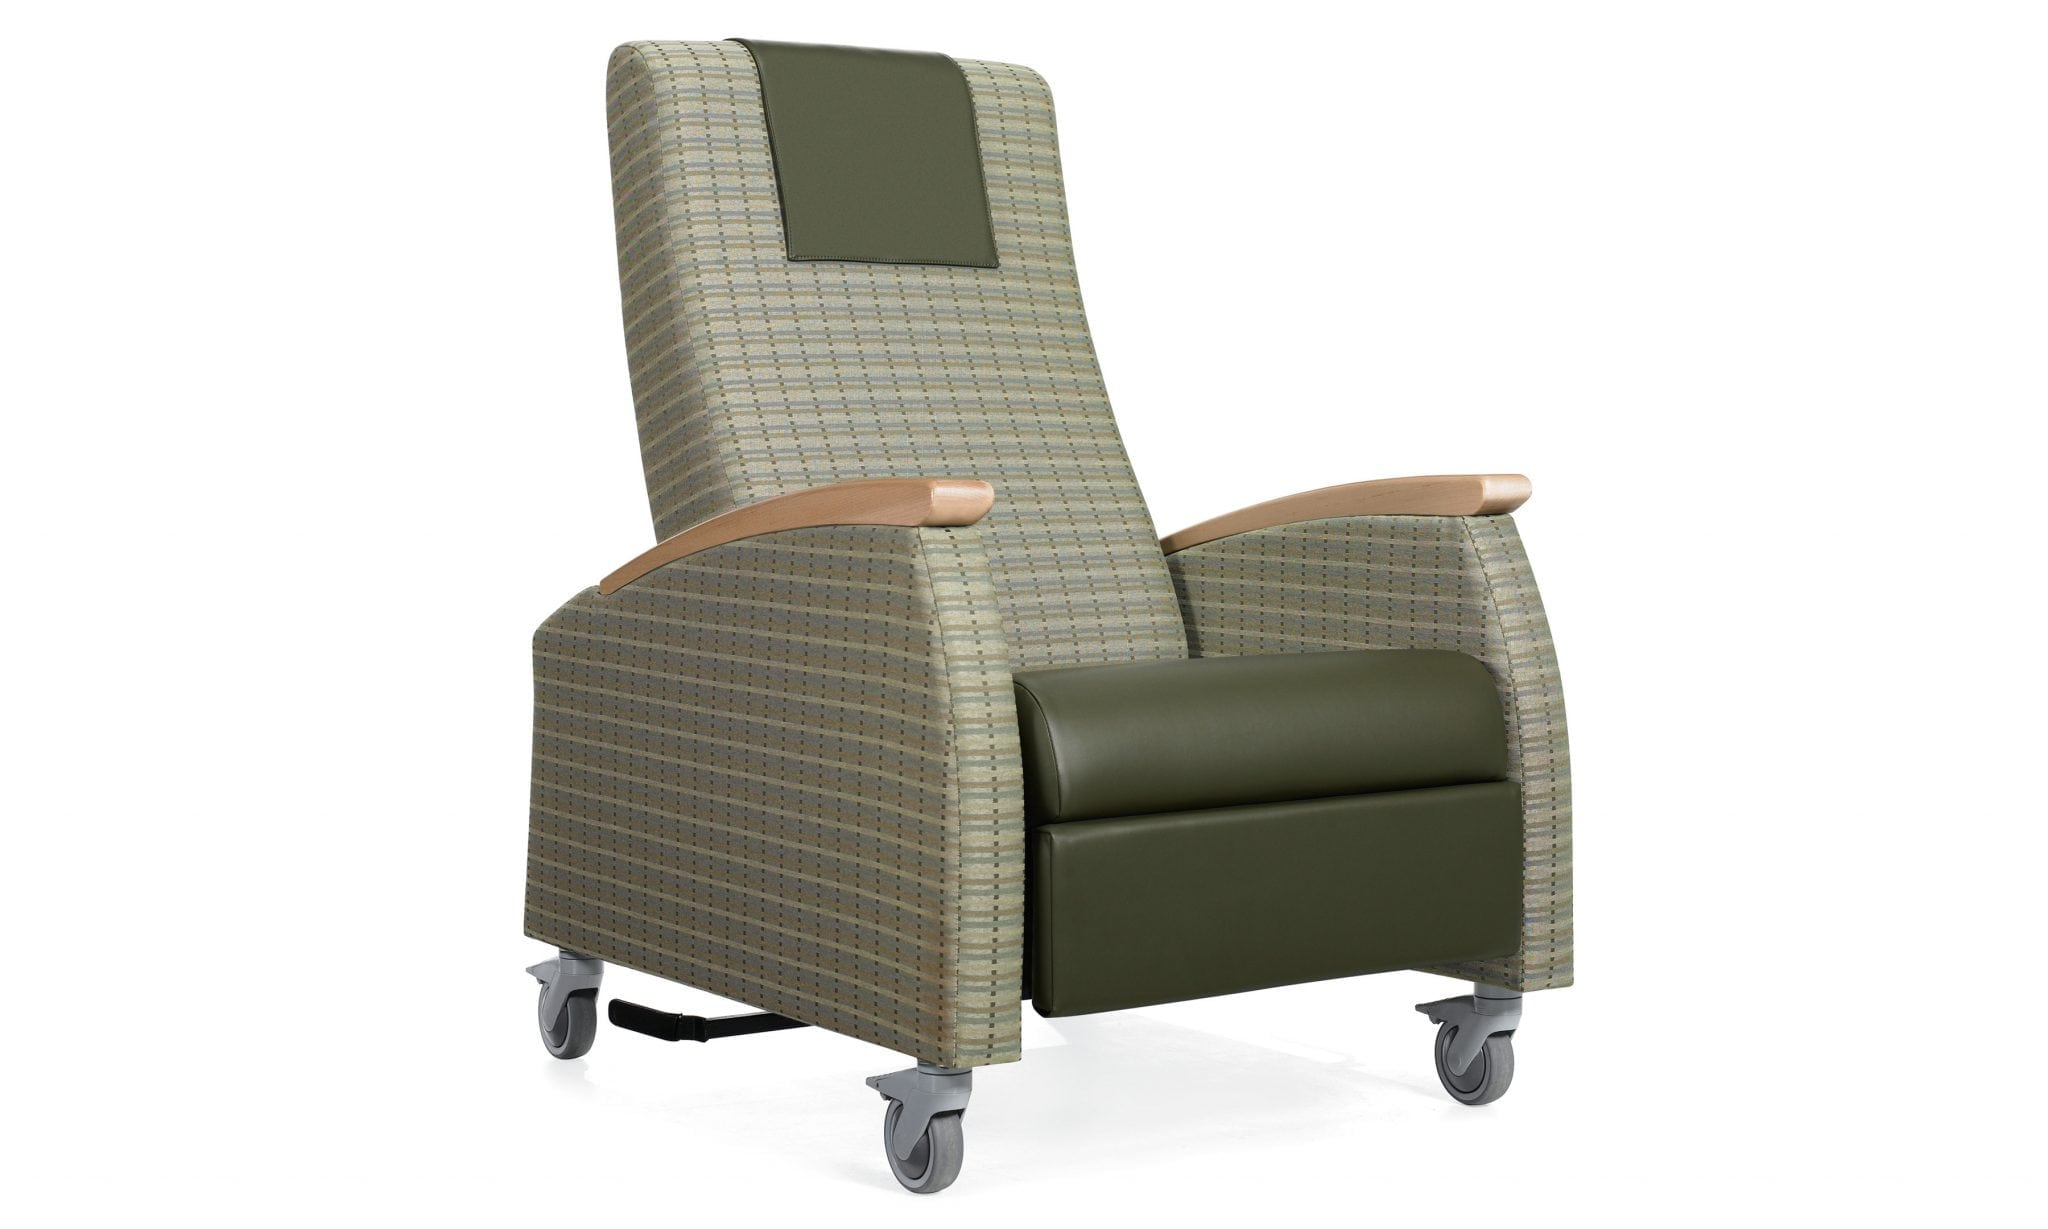 The Primacare Recliner is ideal for overnight in-room guests of all ages